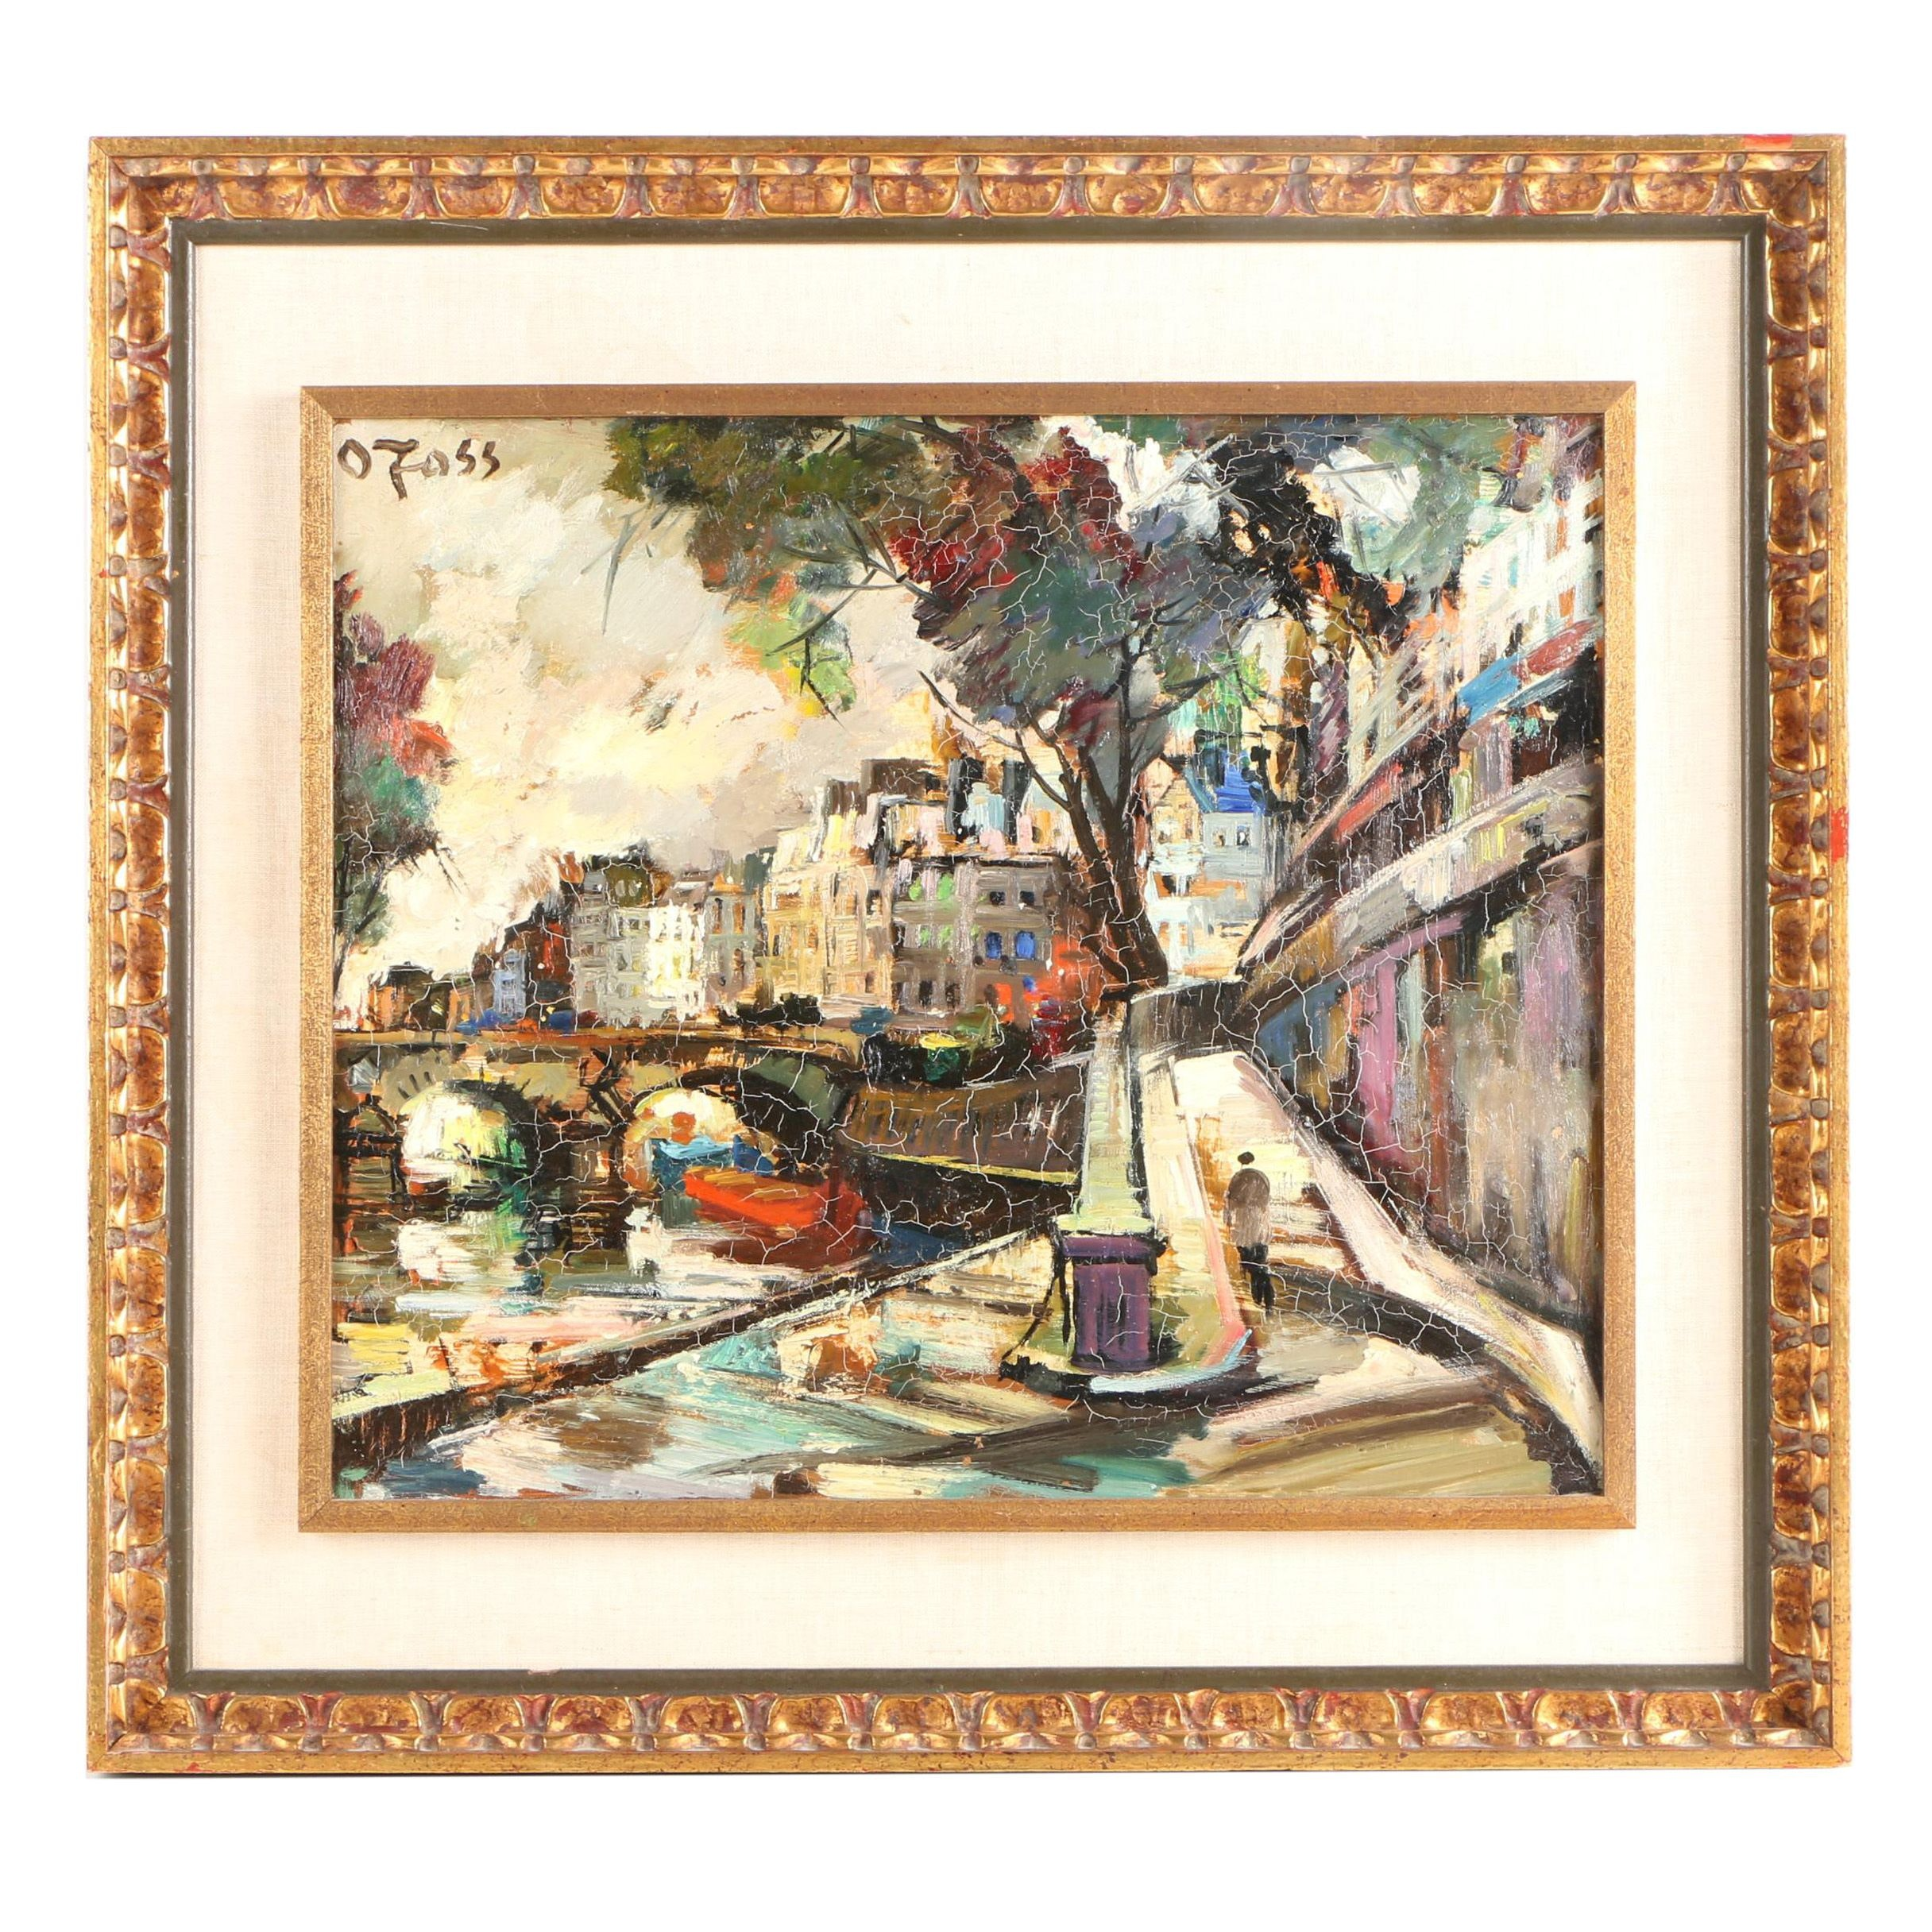 Olivier Foss Oil Painting of a Street Scene on the River